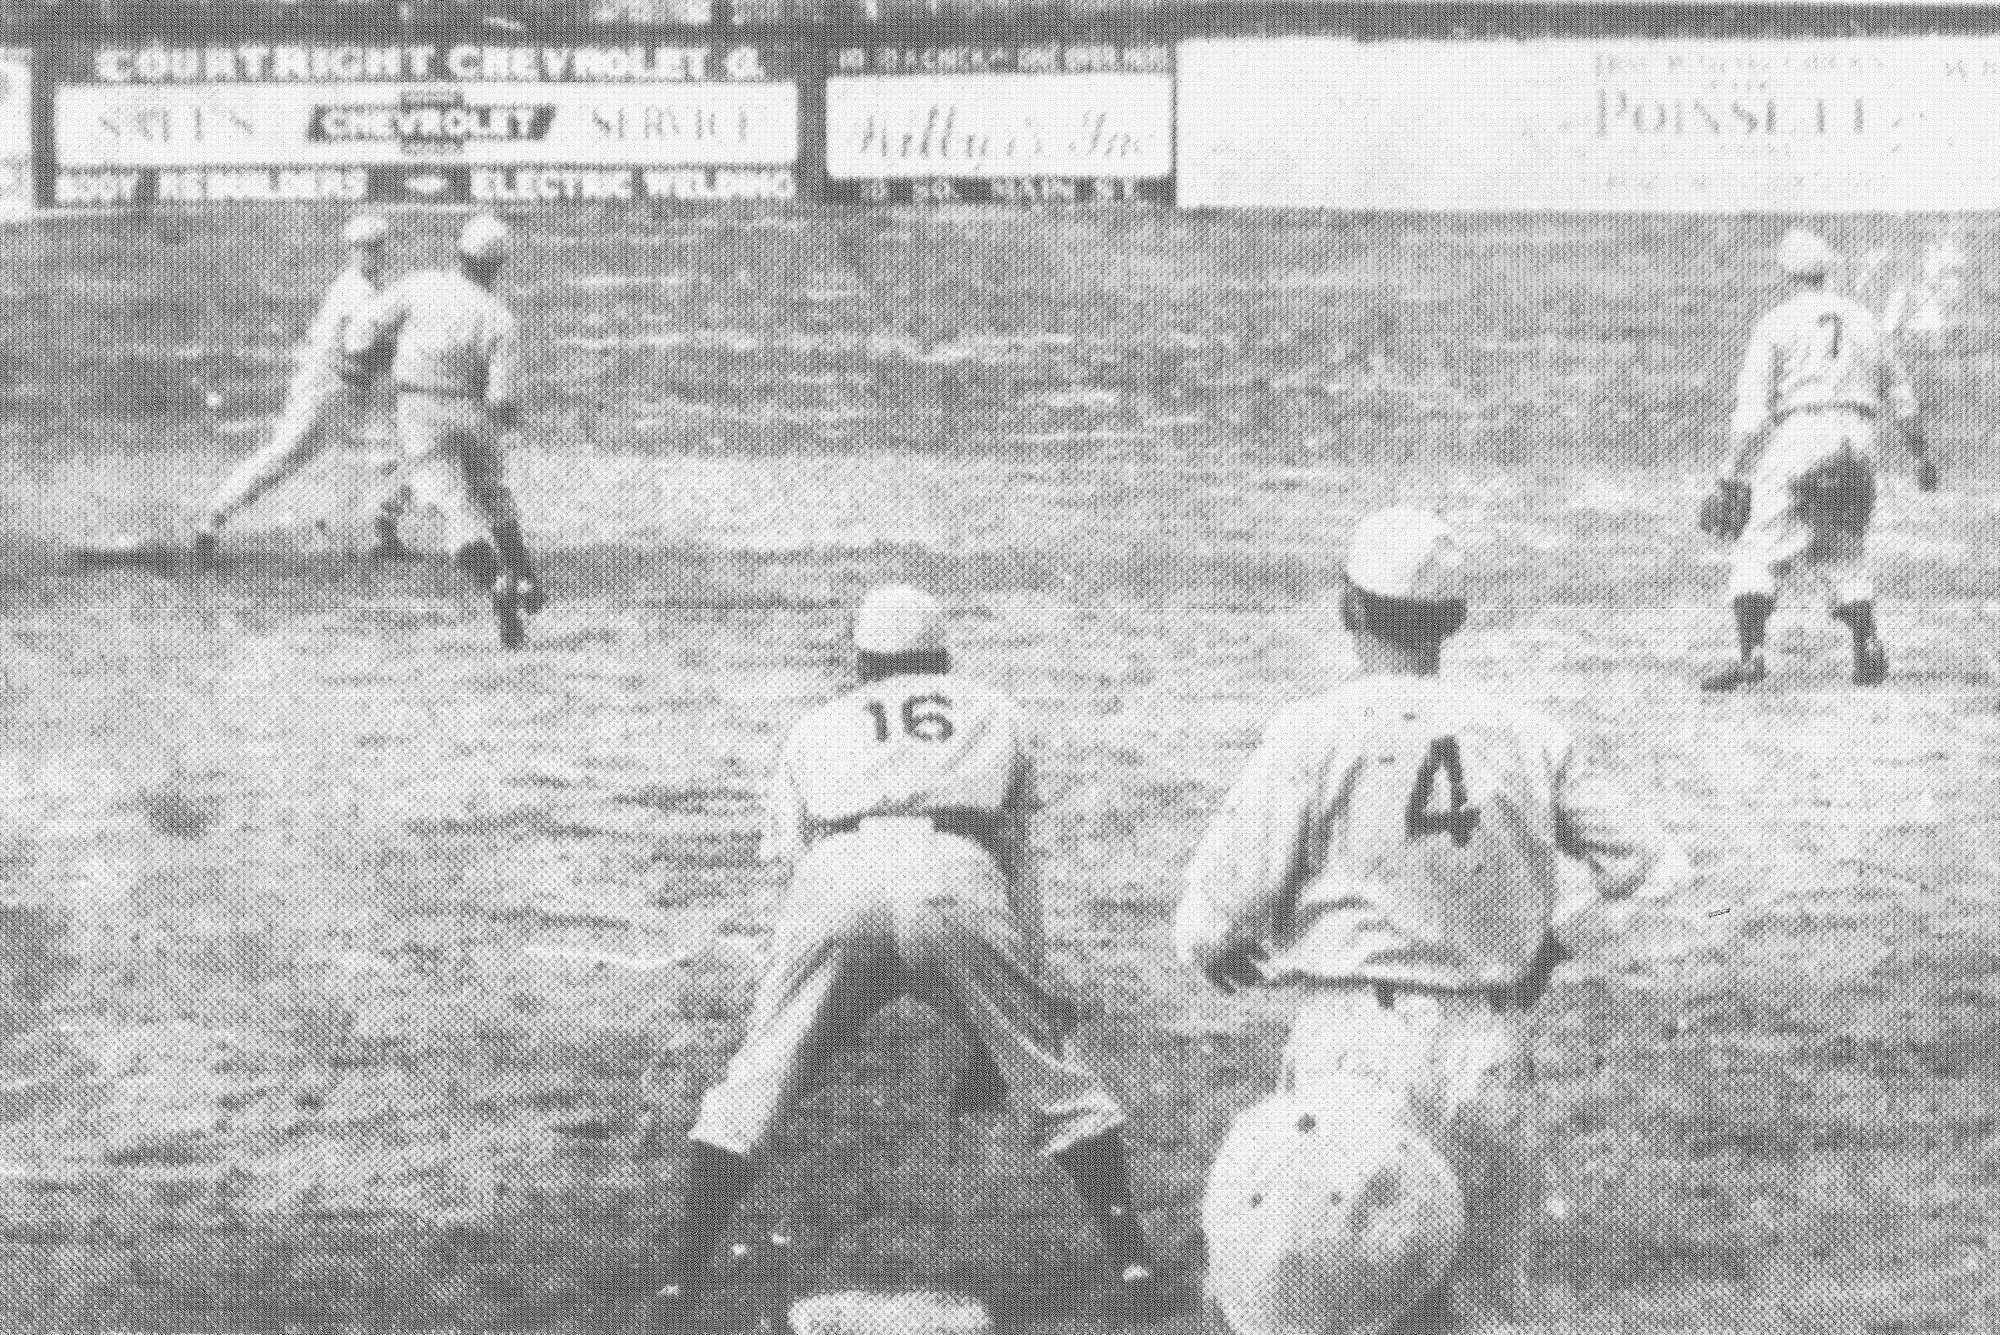 Infield action - Jack Sofia, shortstop for the winners, attempts to complete  a double play in the intra-squad game at Riley Park on March 30, 1949, between two Sumter teams. The runner was forced at second, but the batter was safe at first. No. 16 is Joe Sabatella, No. 4 is Raymond Pate, and No. 7 is Fred Daniels.